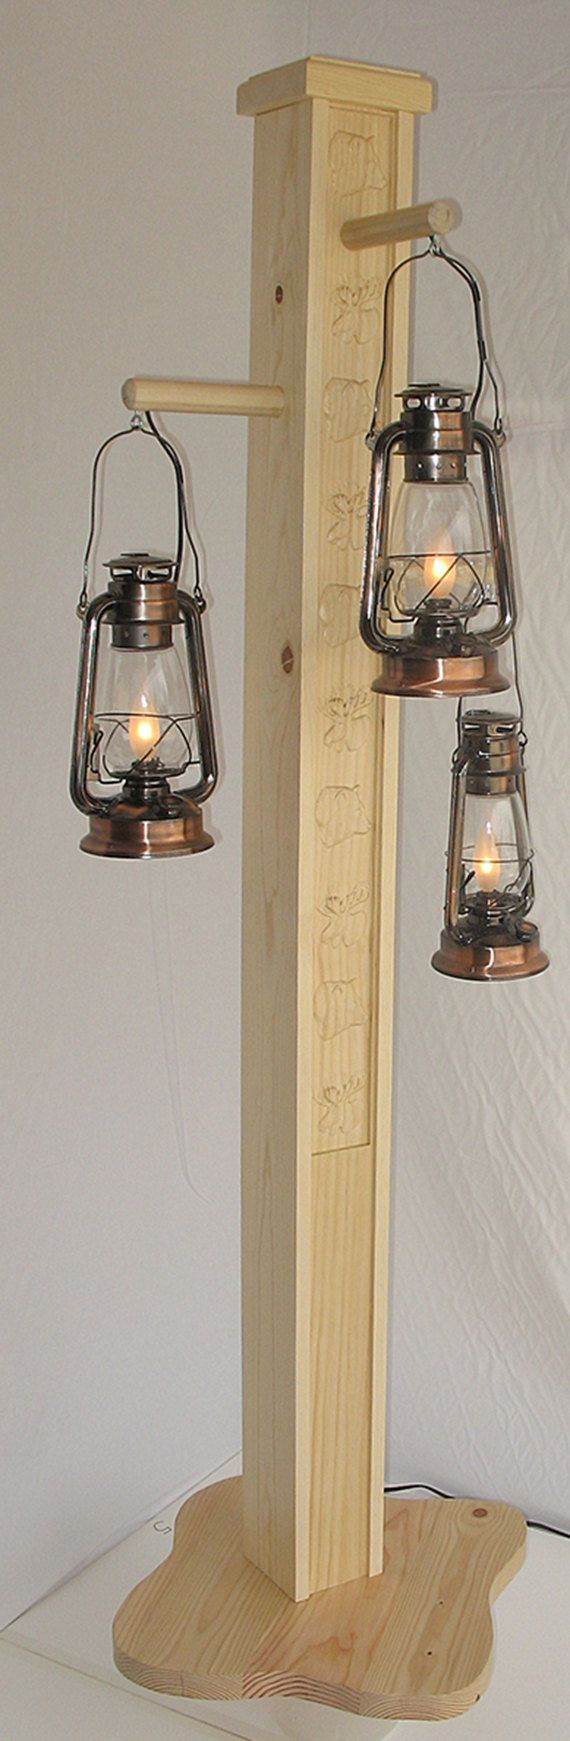 Rustic floor lamp with old fashioned electrified by HomesteadLamps, $749.95